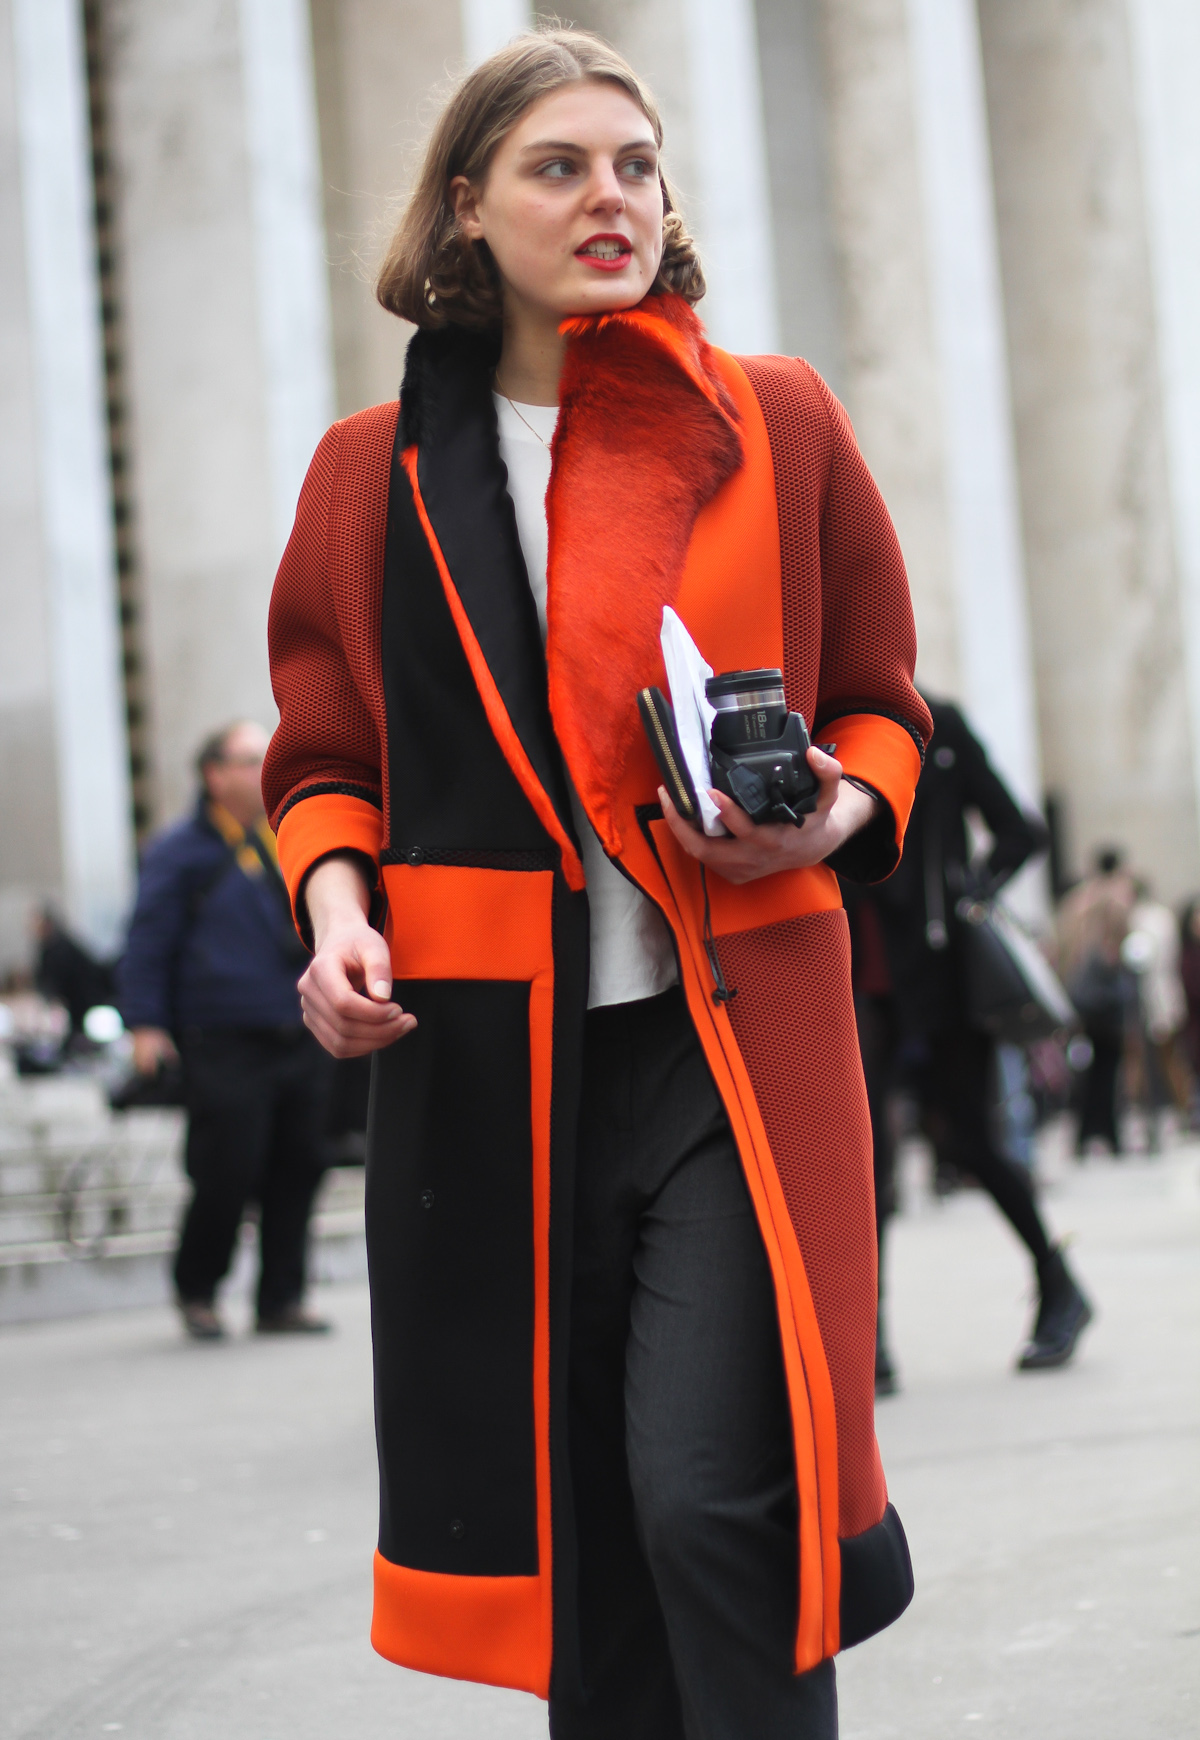 clochet - streetstyle - paris fashion week - nike ari max - orange structured coat-4